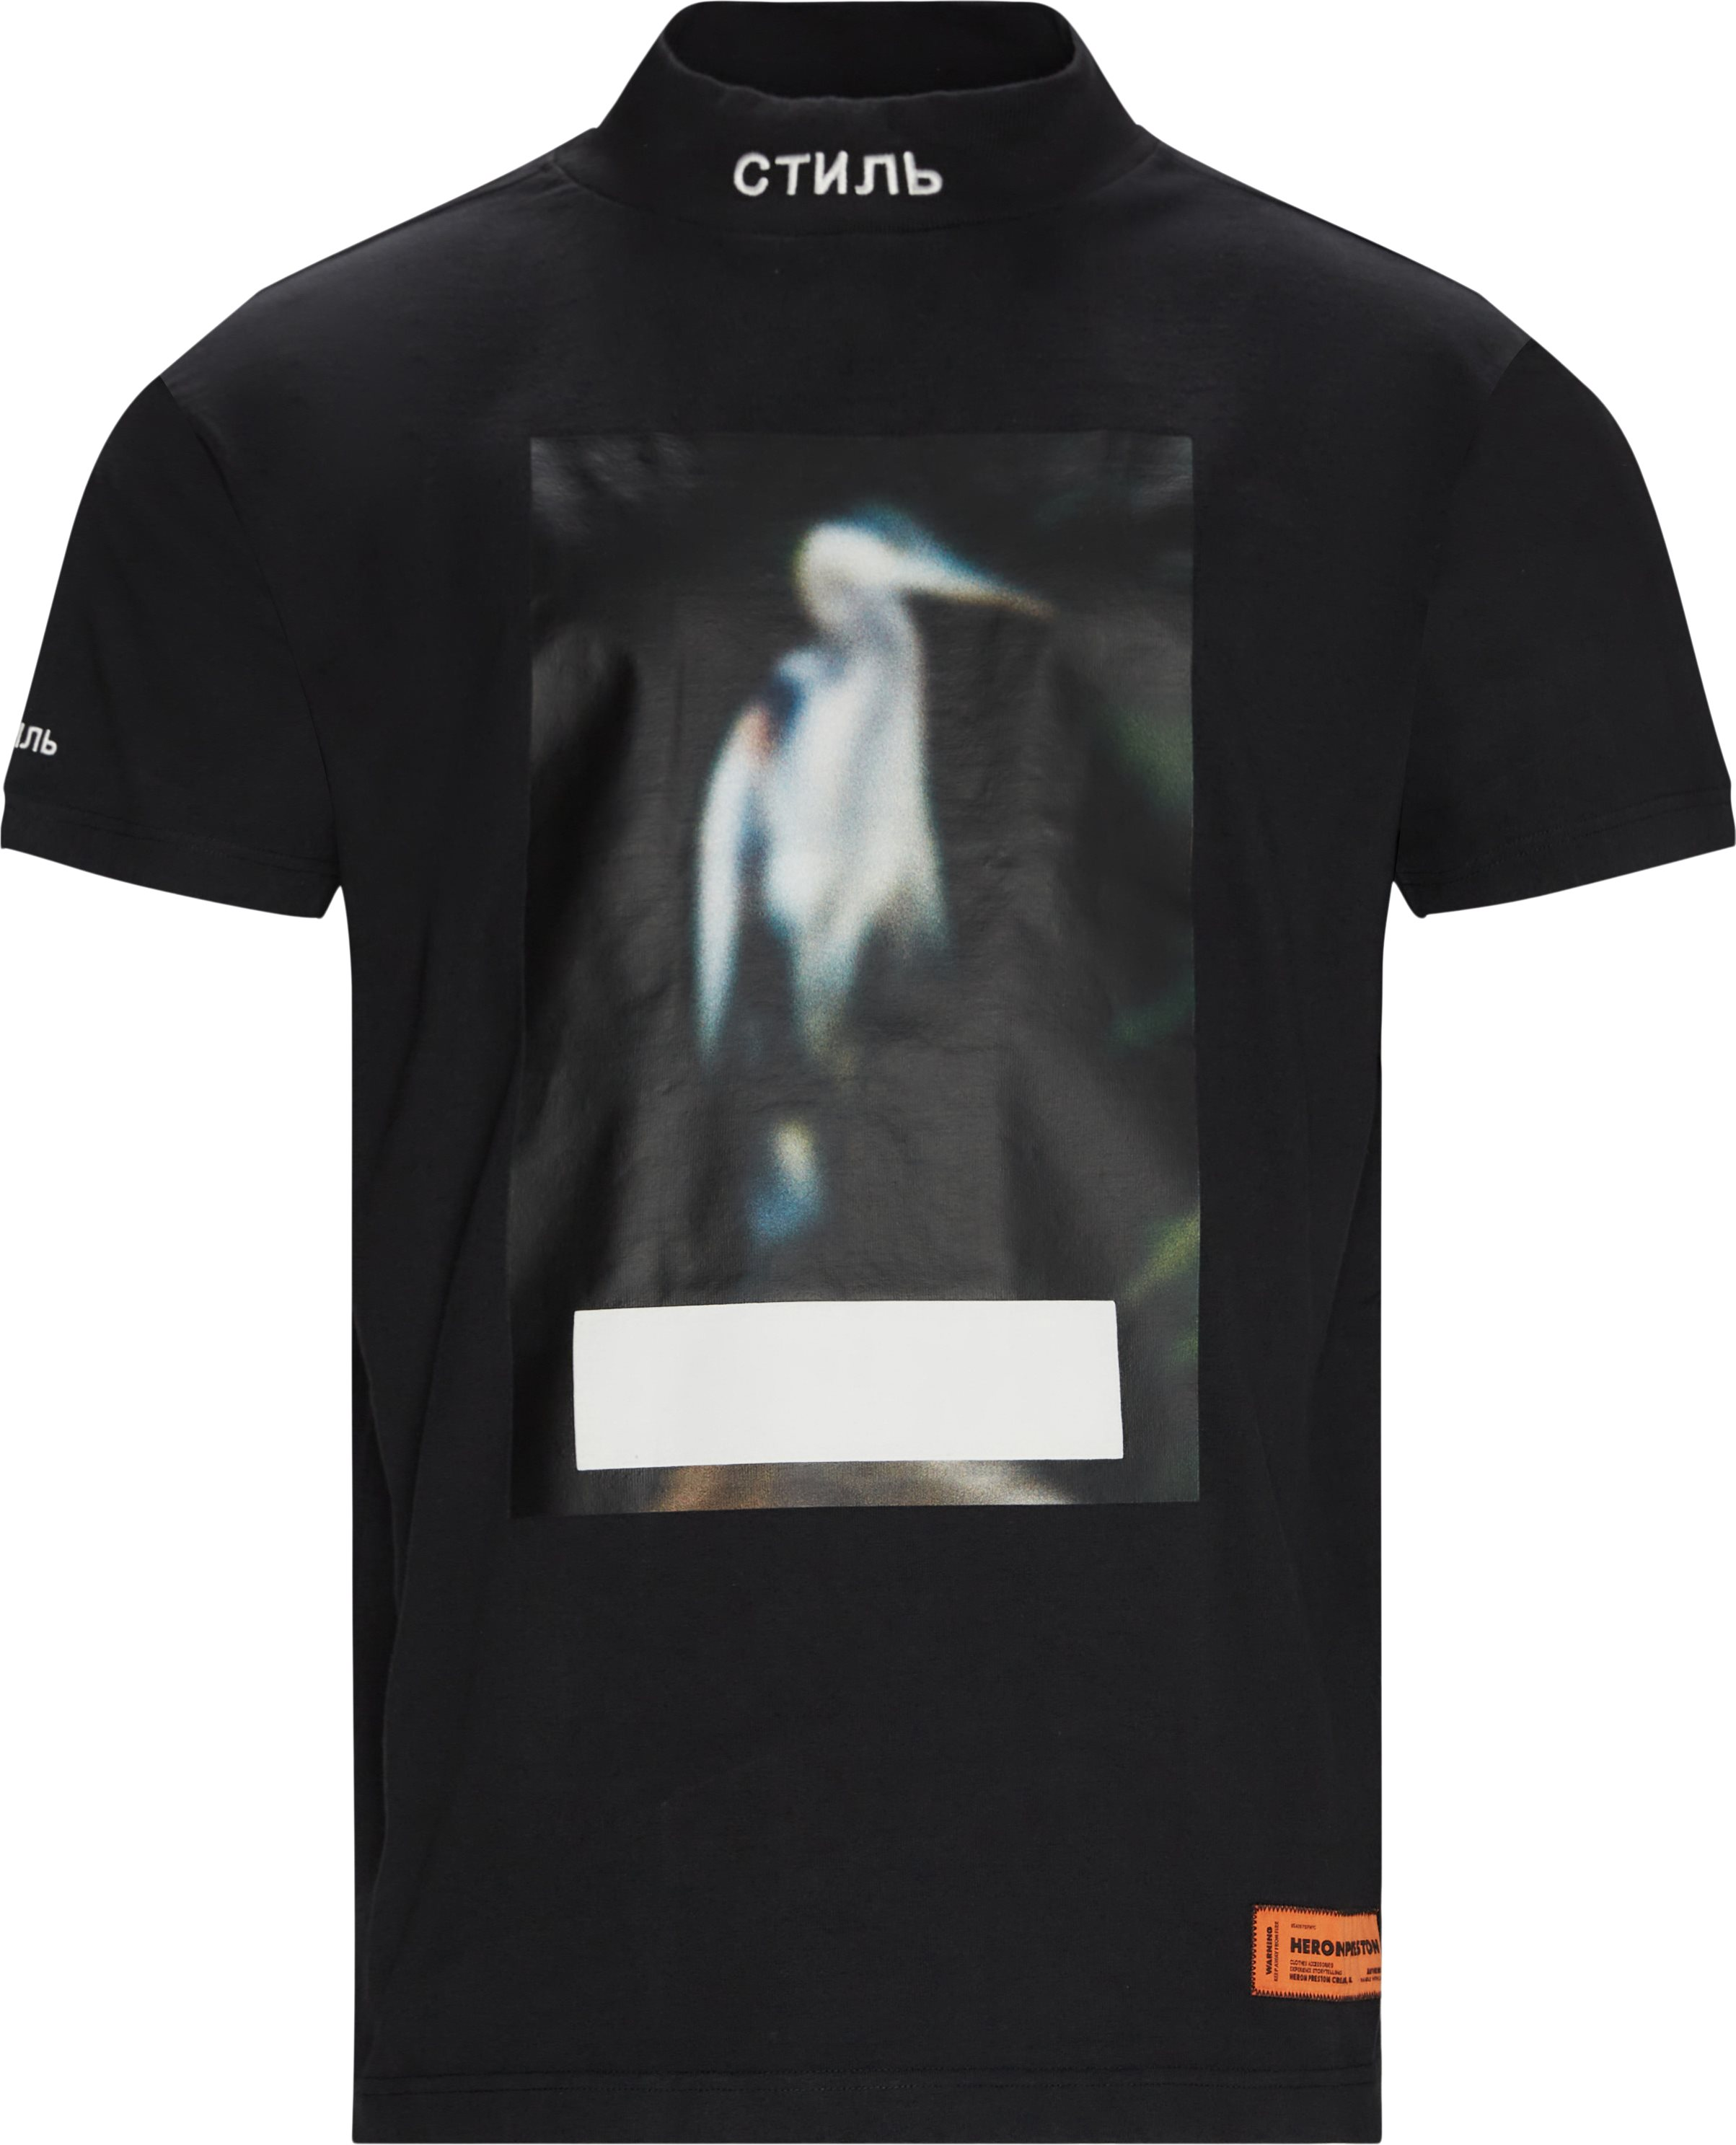 Censored Tee - T-shirts - Oversize fit - Sort